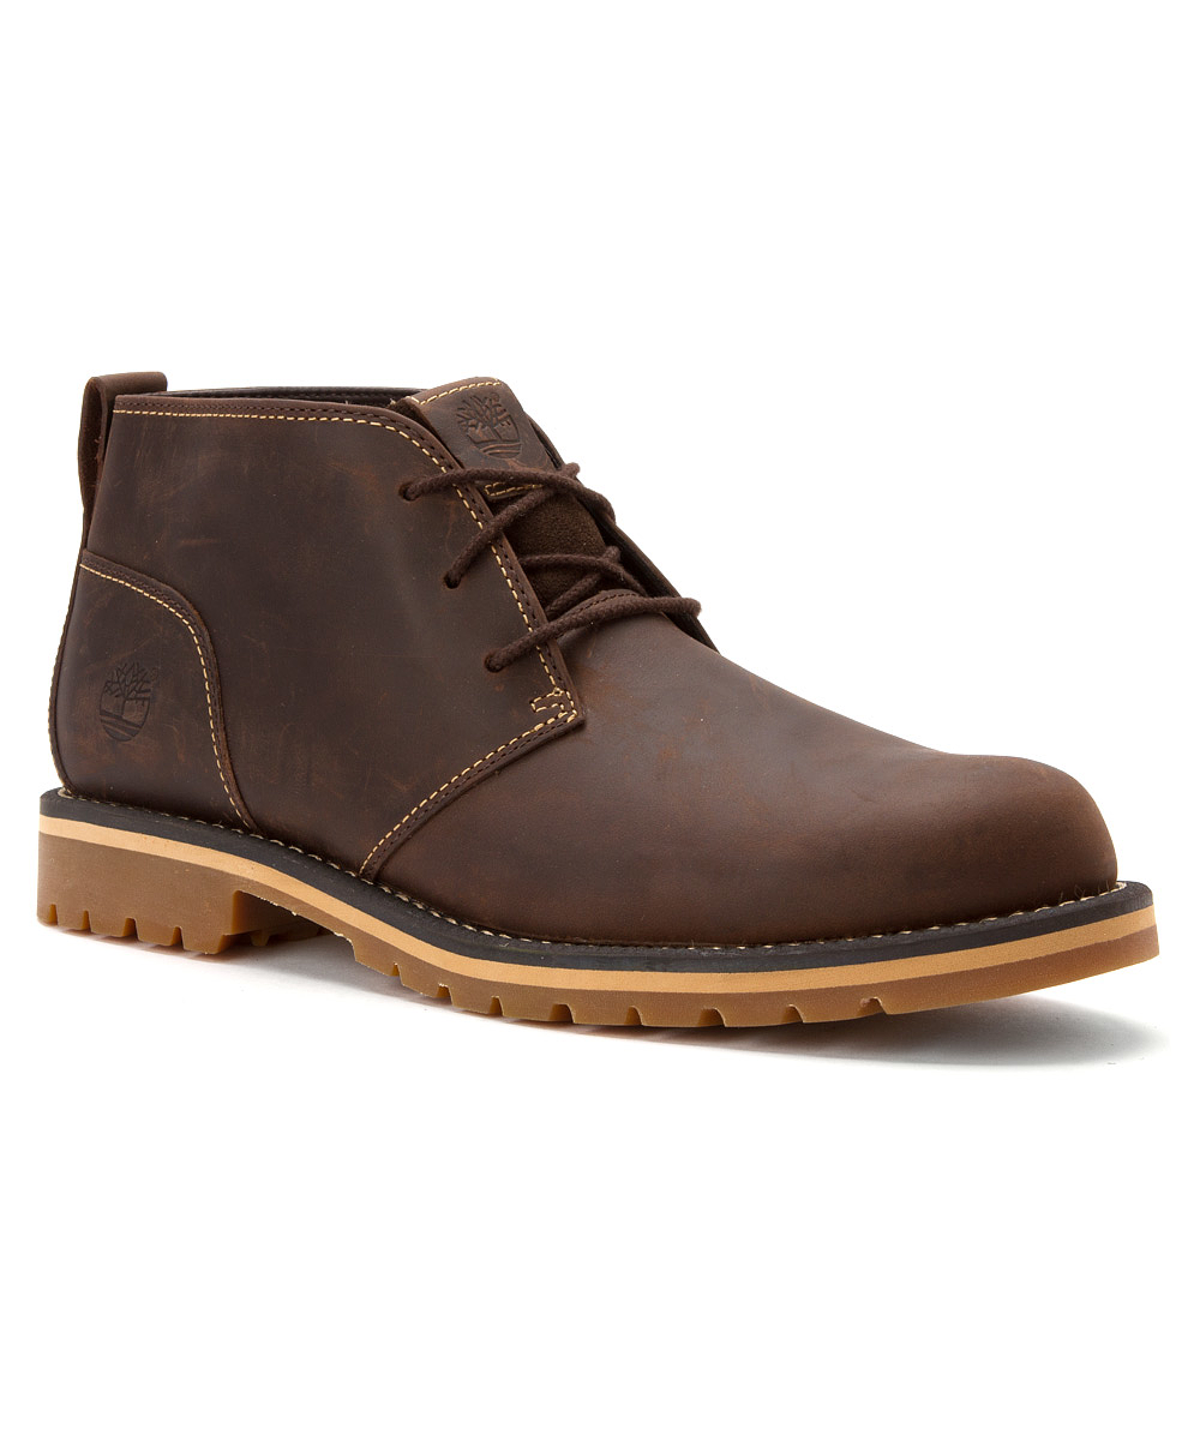 timberland grantly chukka ankle boots